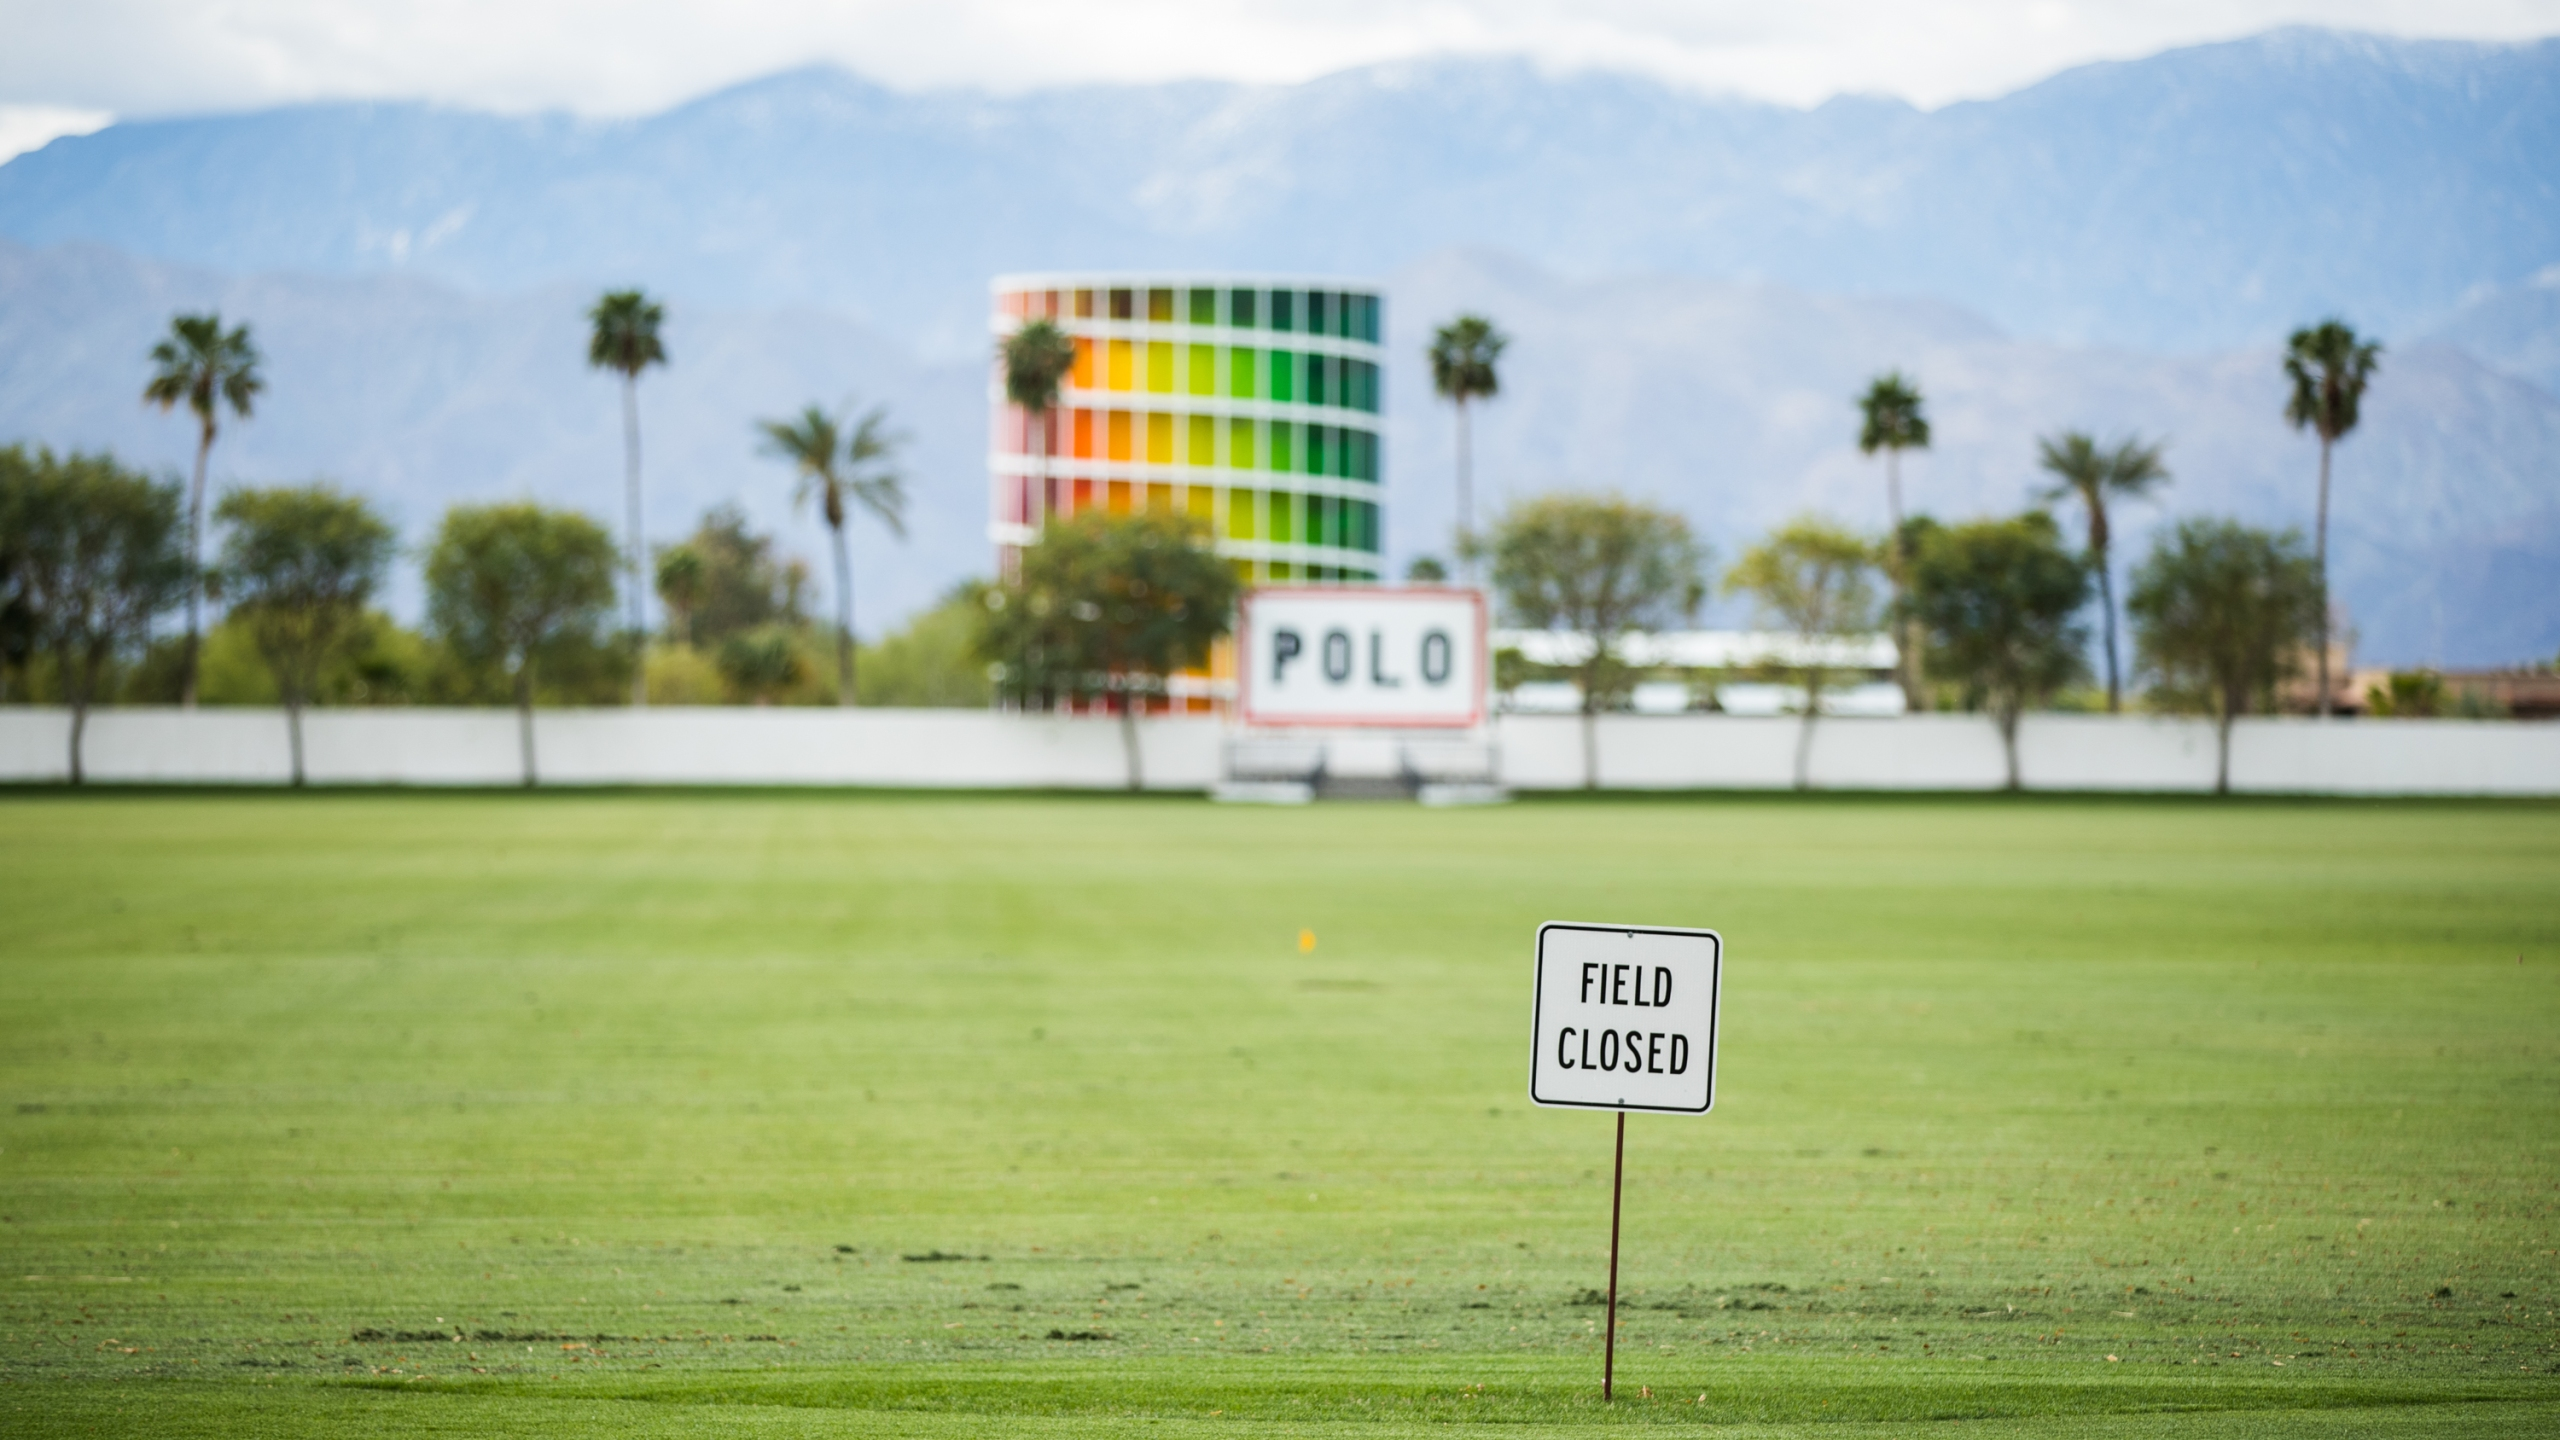 The Empire Polo Club in Indio is seen on April 9, 2020. (Rich Fury / Getty Images)